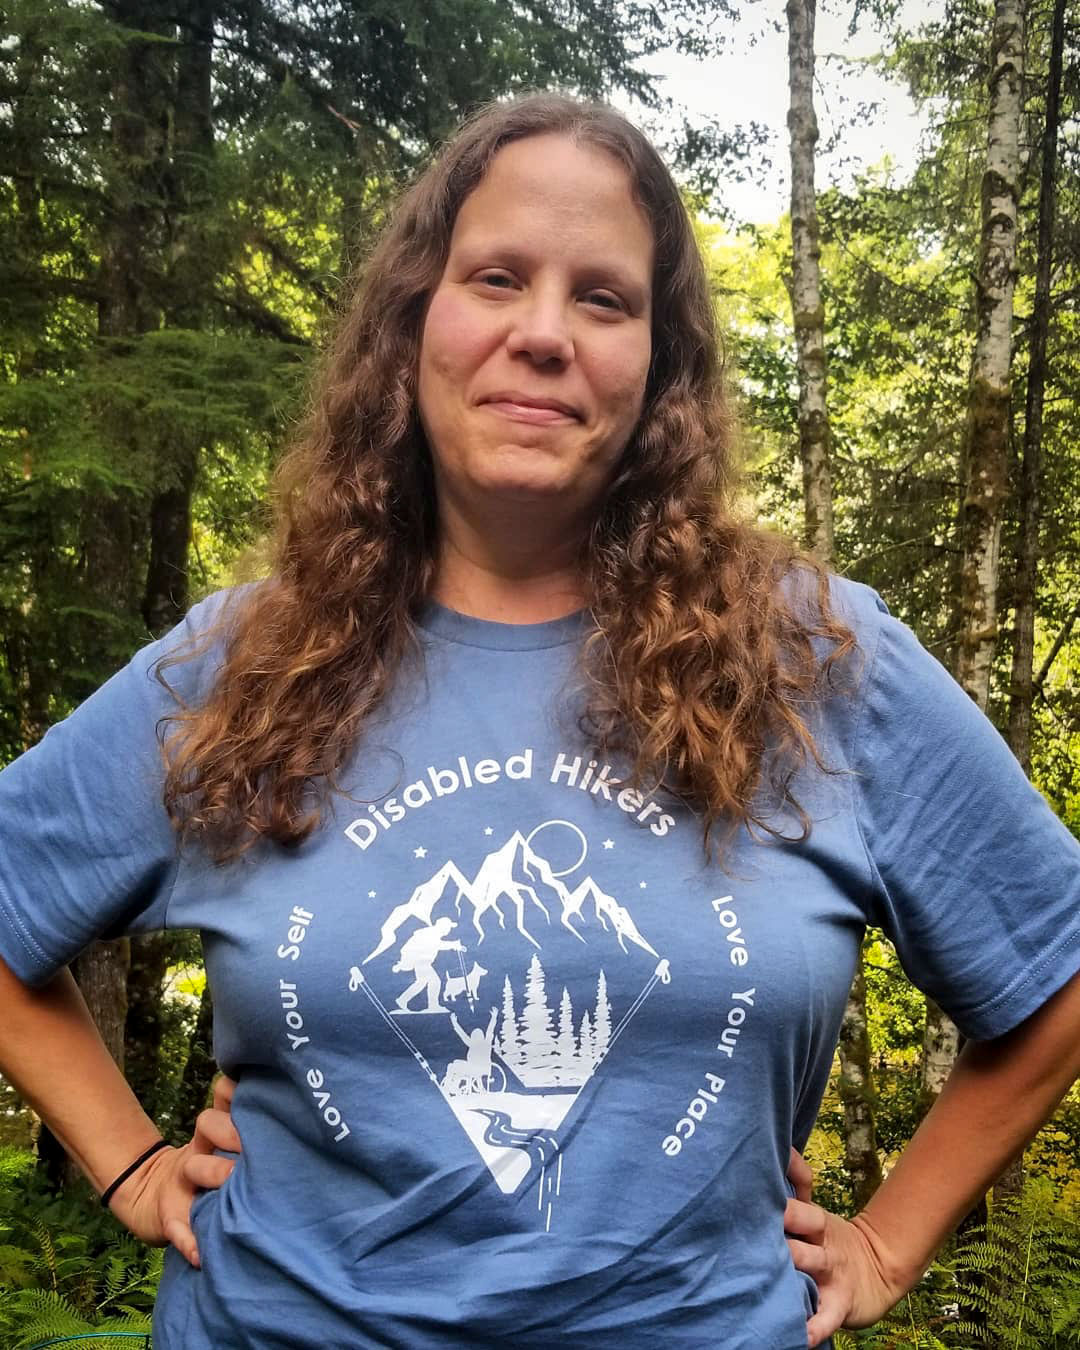 Syren Nagakyrie, founder of the group Disabled Hikers. Courtesy of Syren Nagakyrie